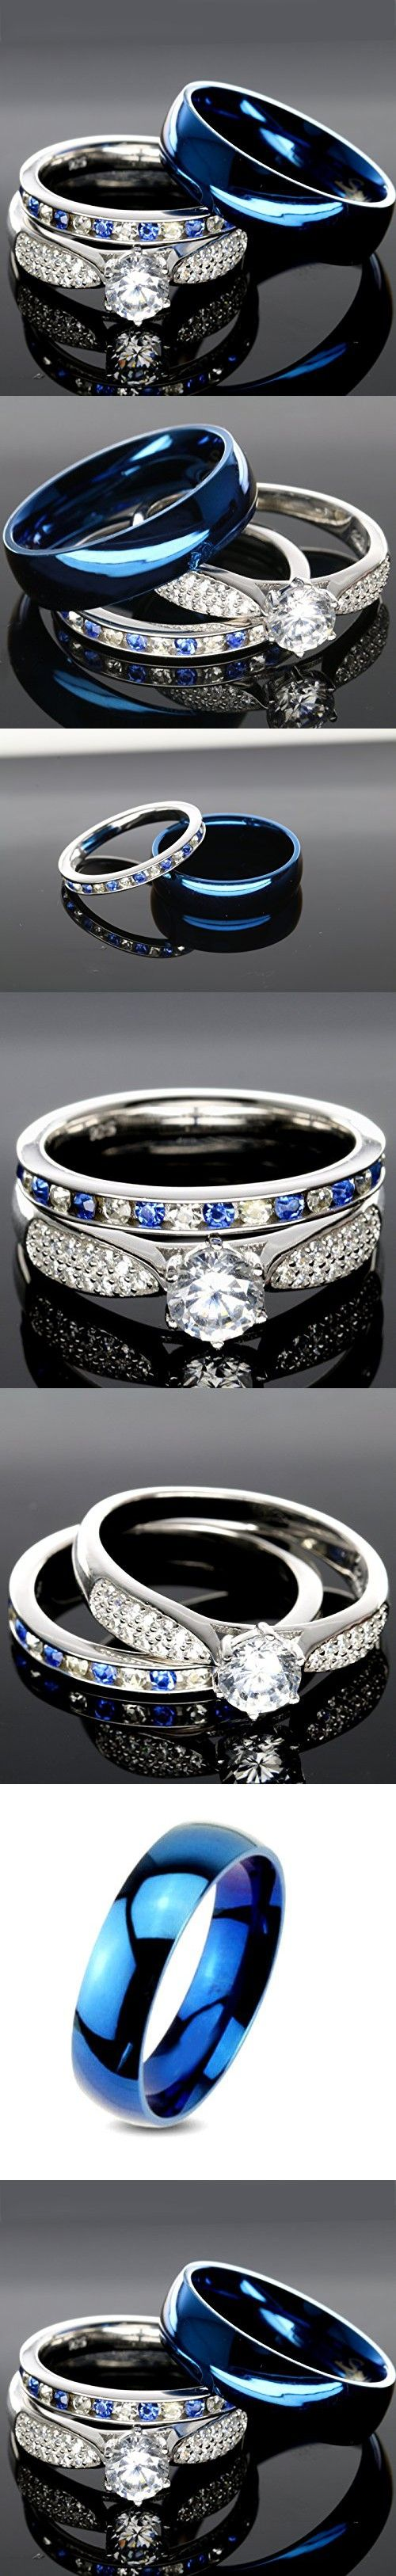 chereish love zirconias three stainless row rings products ring set and perfect cherish engagement sparkling cubic wedding a steel of honor with